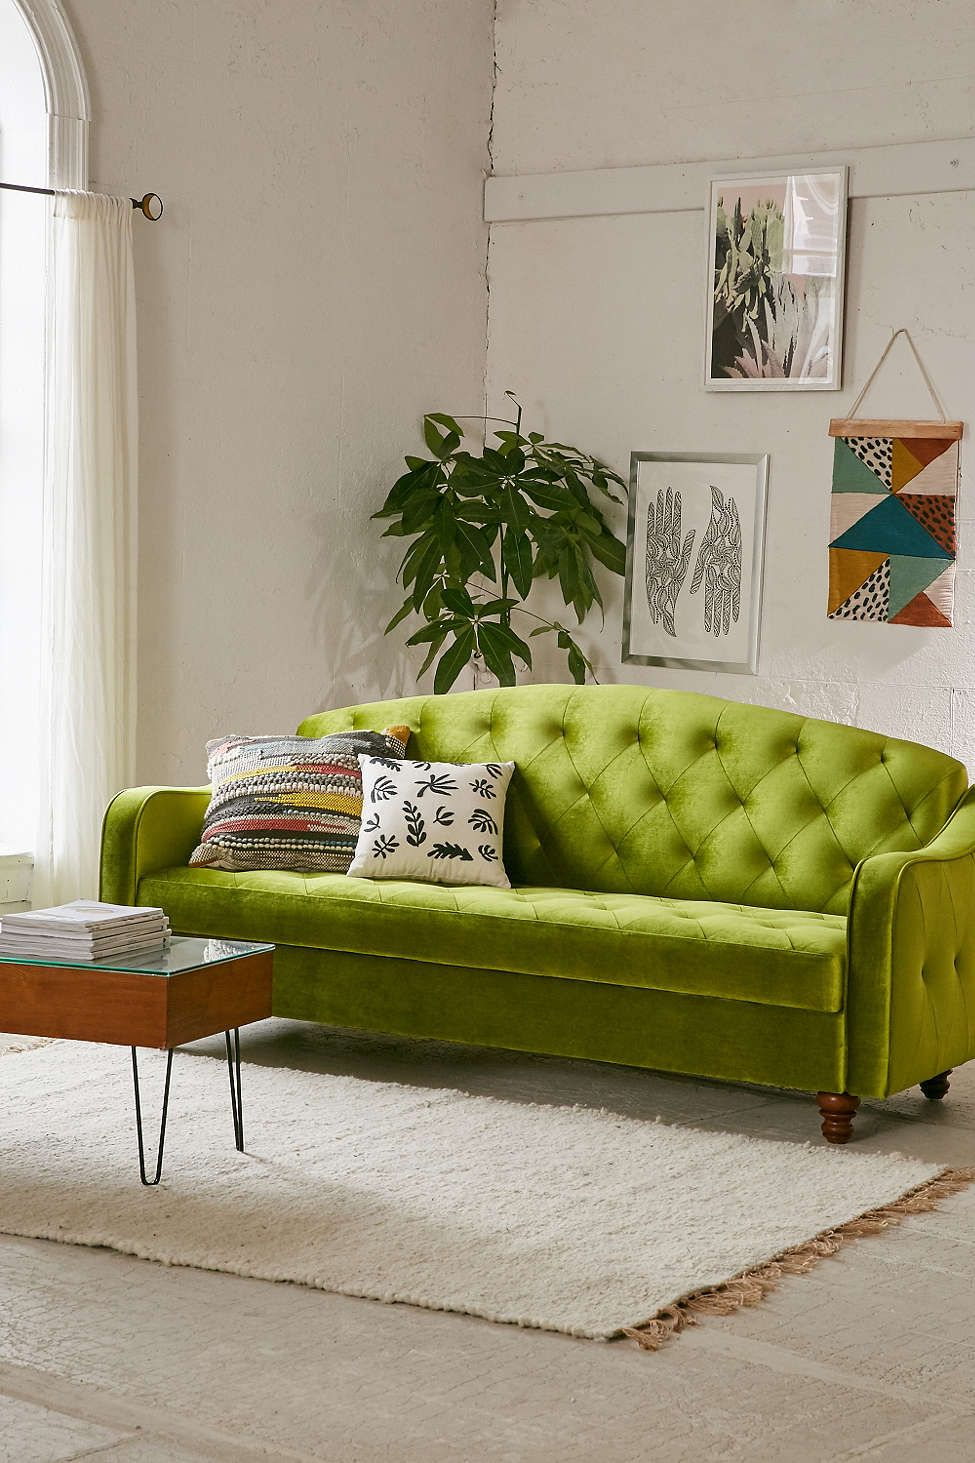 Sofa Vs Couch The Great Seating Debate Decoist Home